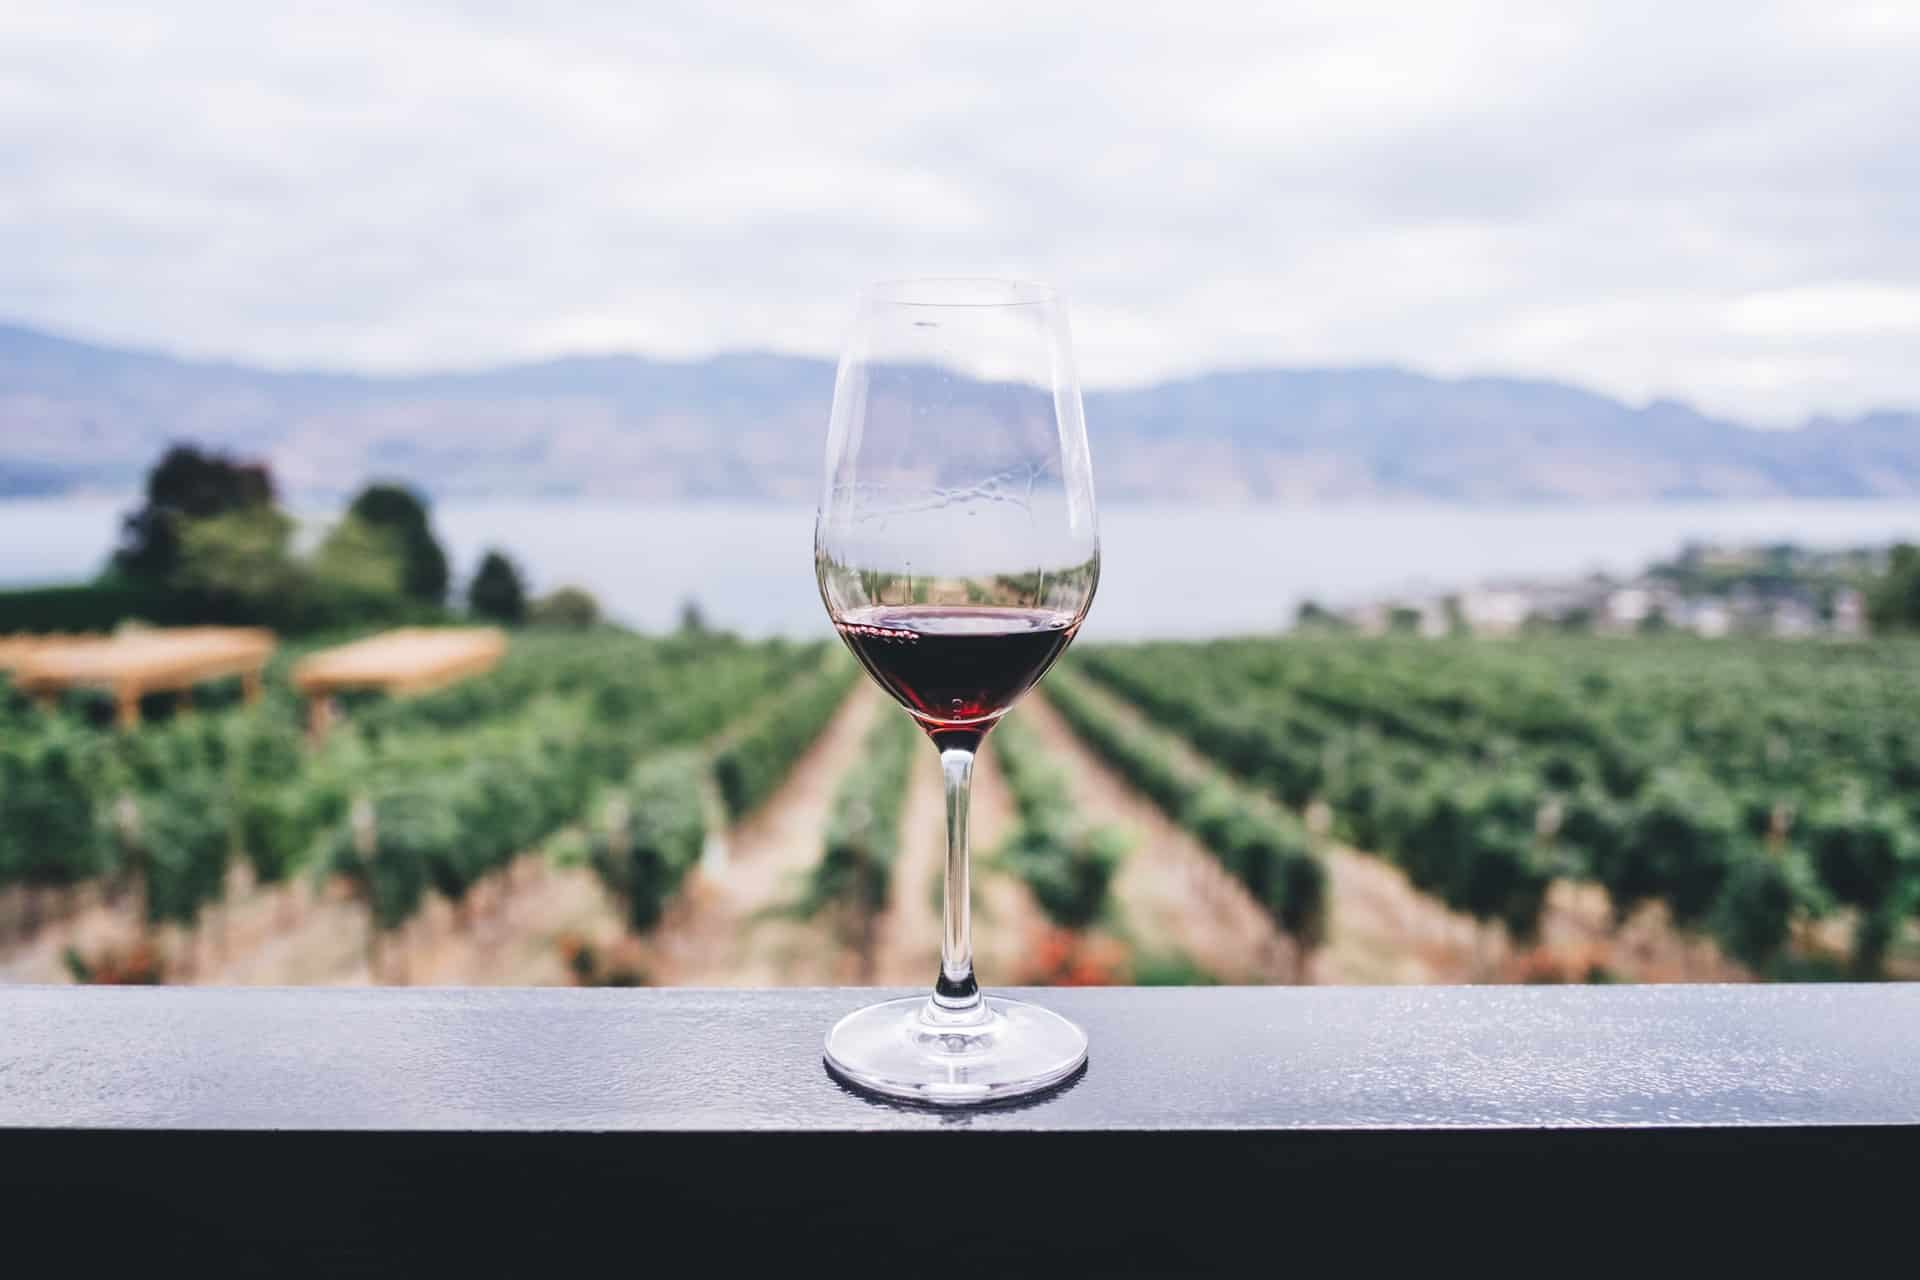 Clear wine glass overlooking orchard during daytime